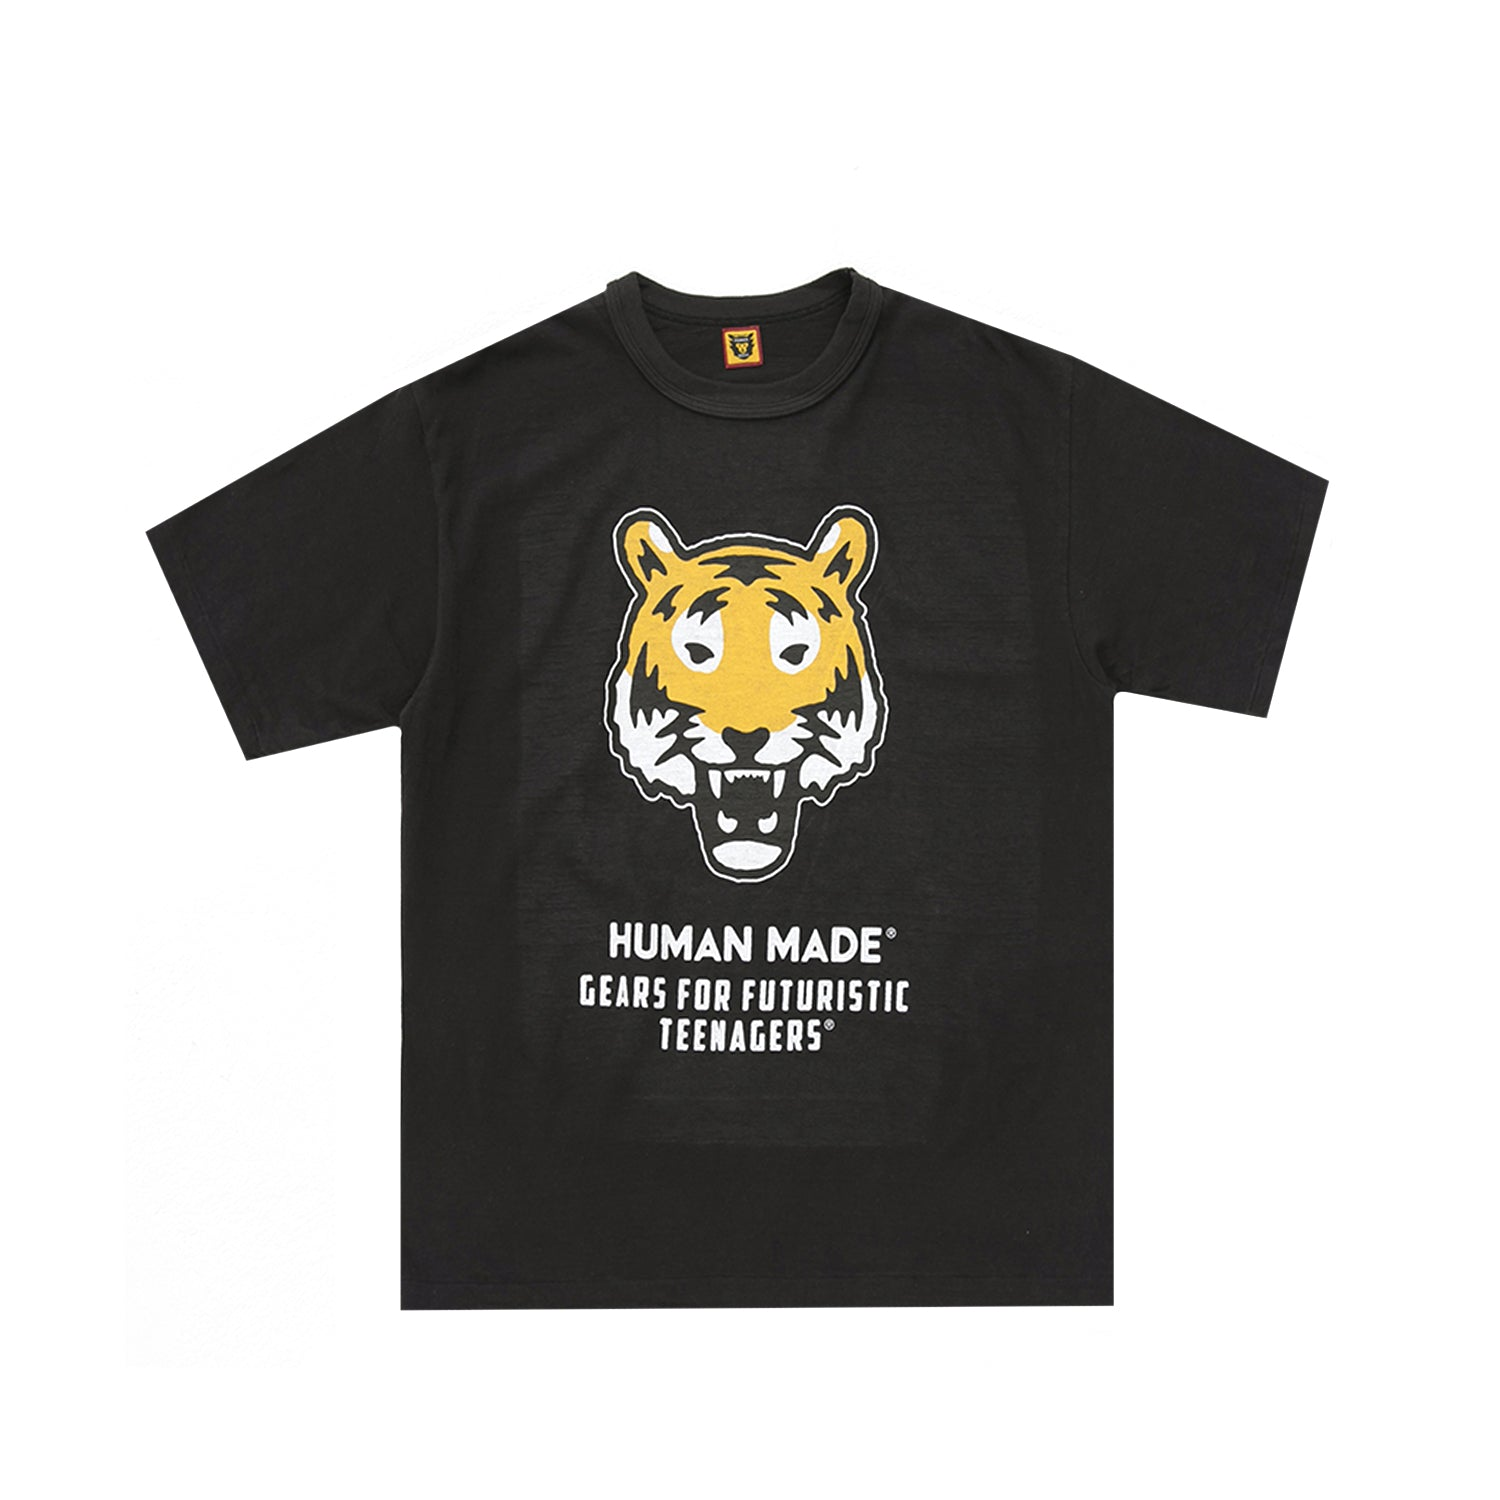 HM TIGER T-SHIRT